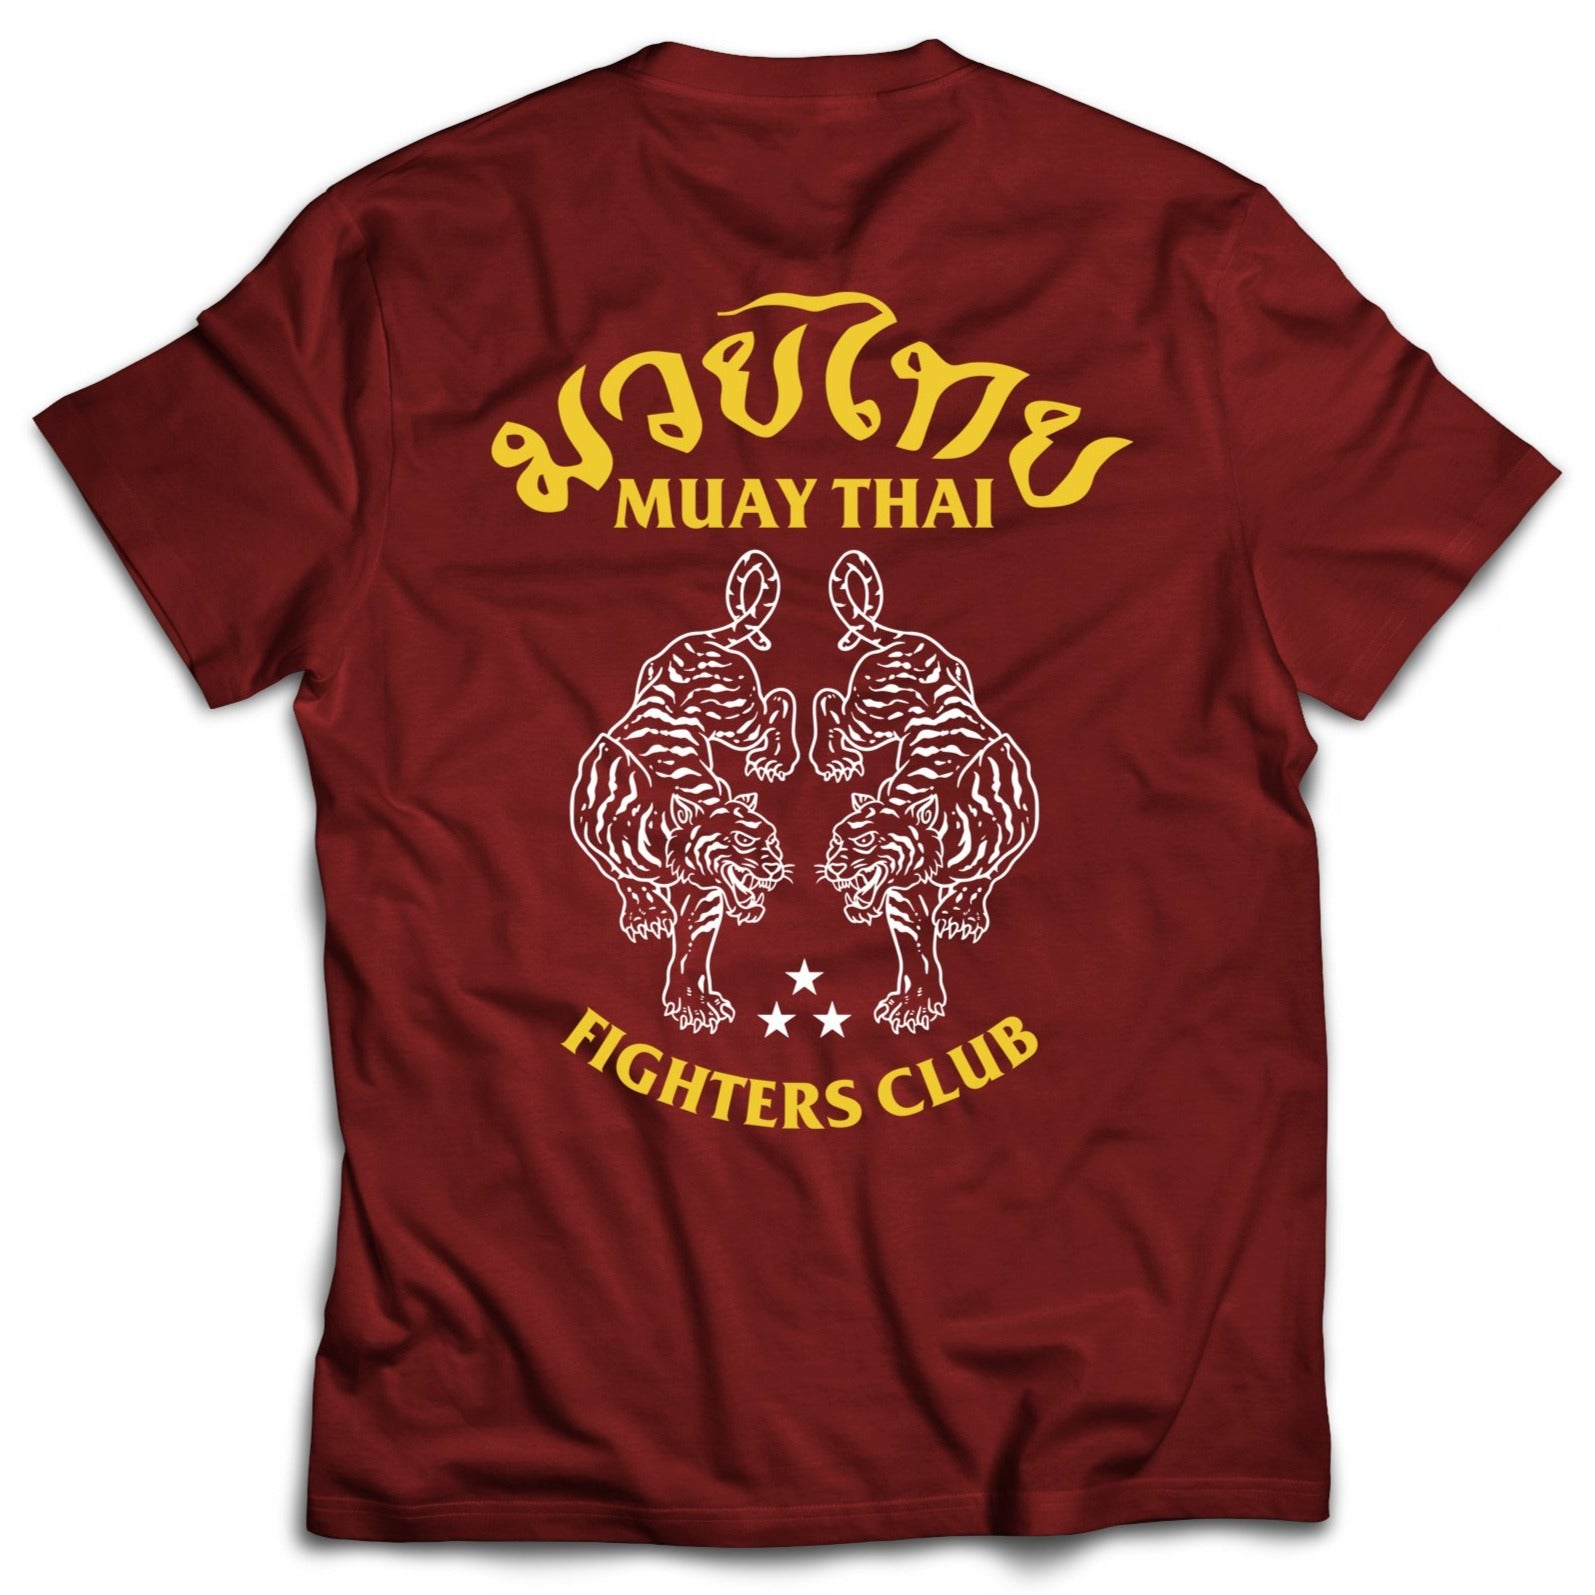 MUAY THAI TWIN TIGER T-SHIRT - RED